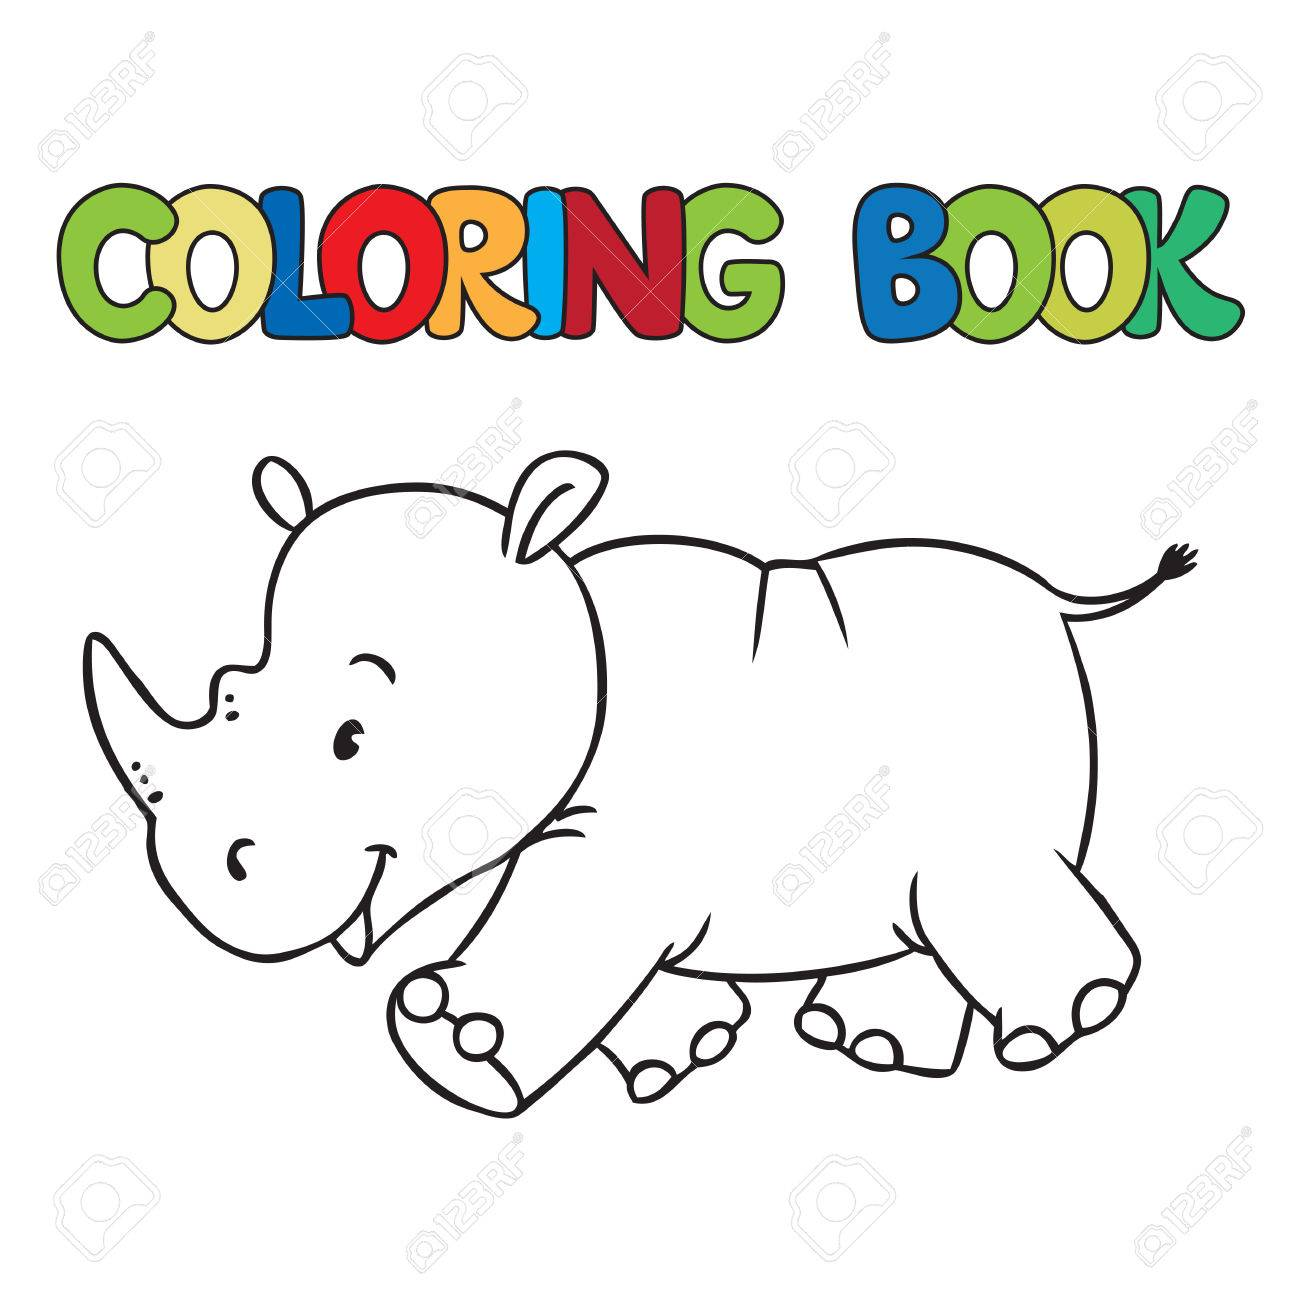 Coloring Book Or Coloring Picture Of Little Funny Rhino Royalty Free ...